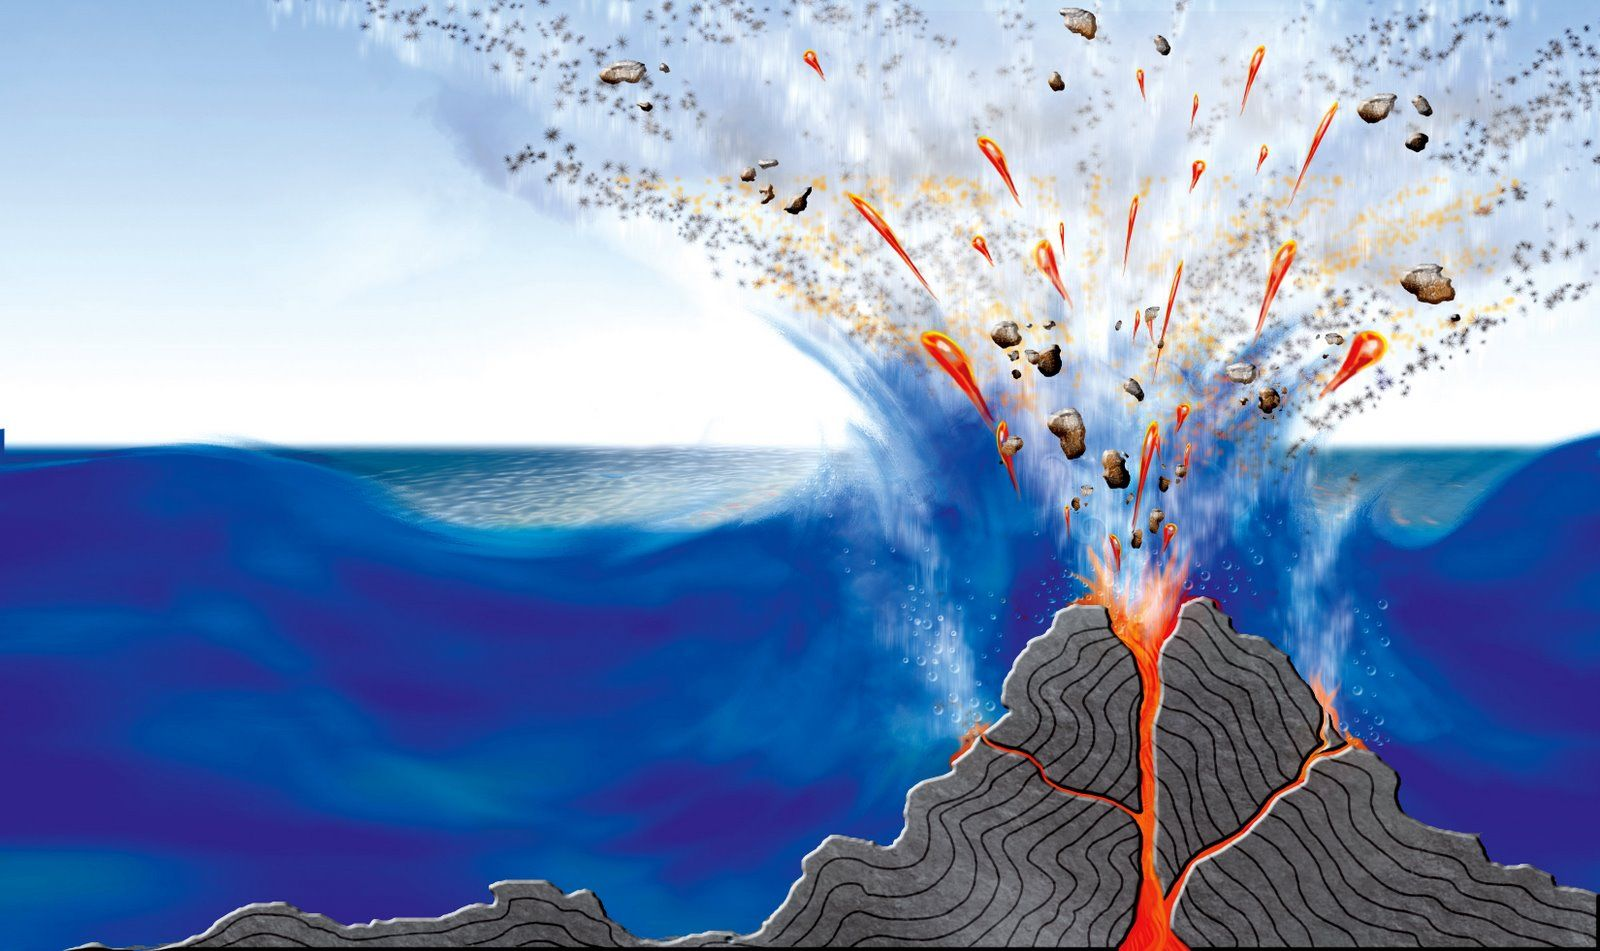 volcanos ocean information school science projects homeschool underwater welt volcanoes  [ 1600 x 951 Pixel ]